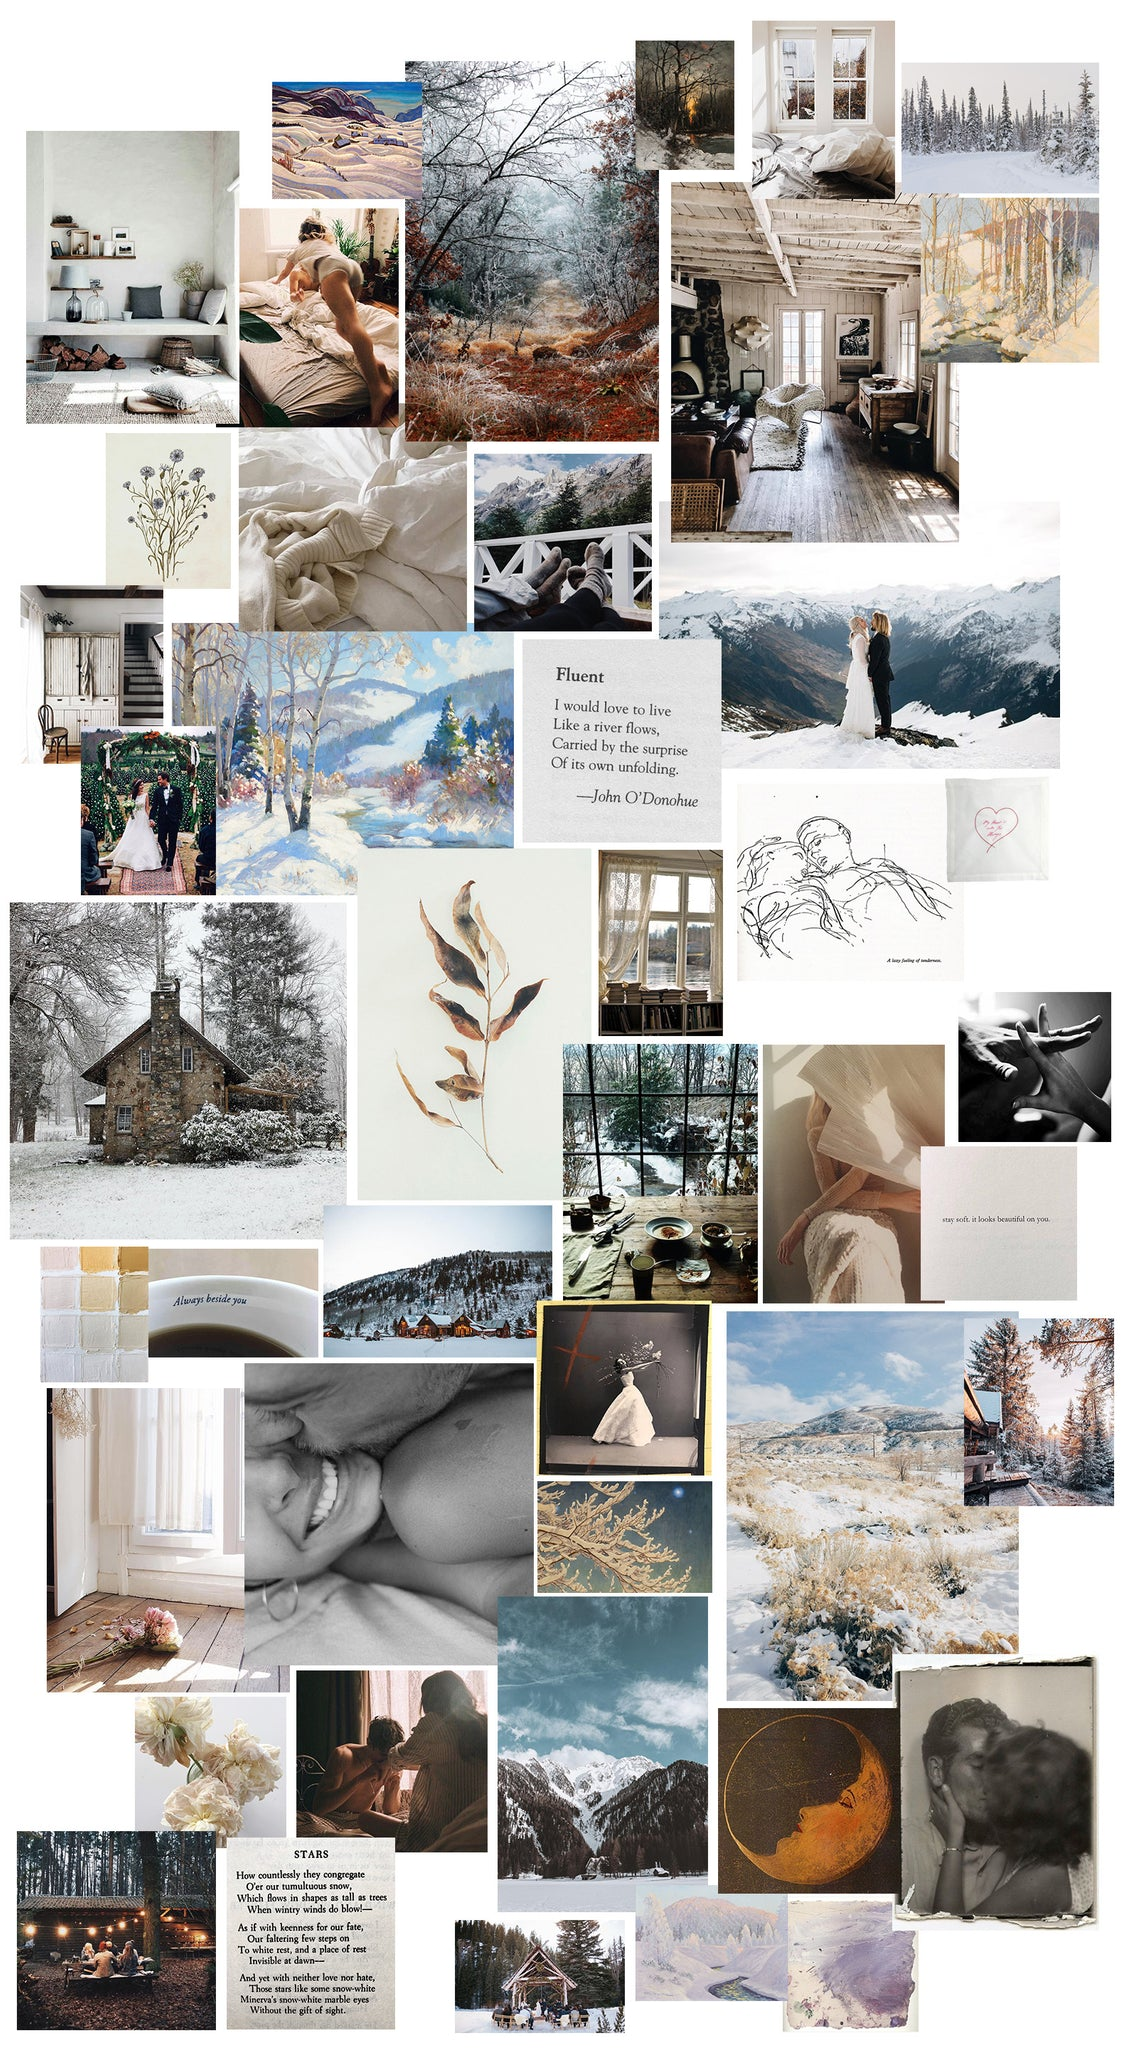 mood board, flower, winter, winter's light, light, cozy, love, engagement, inspo, inspiration